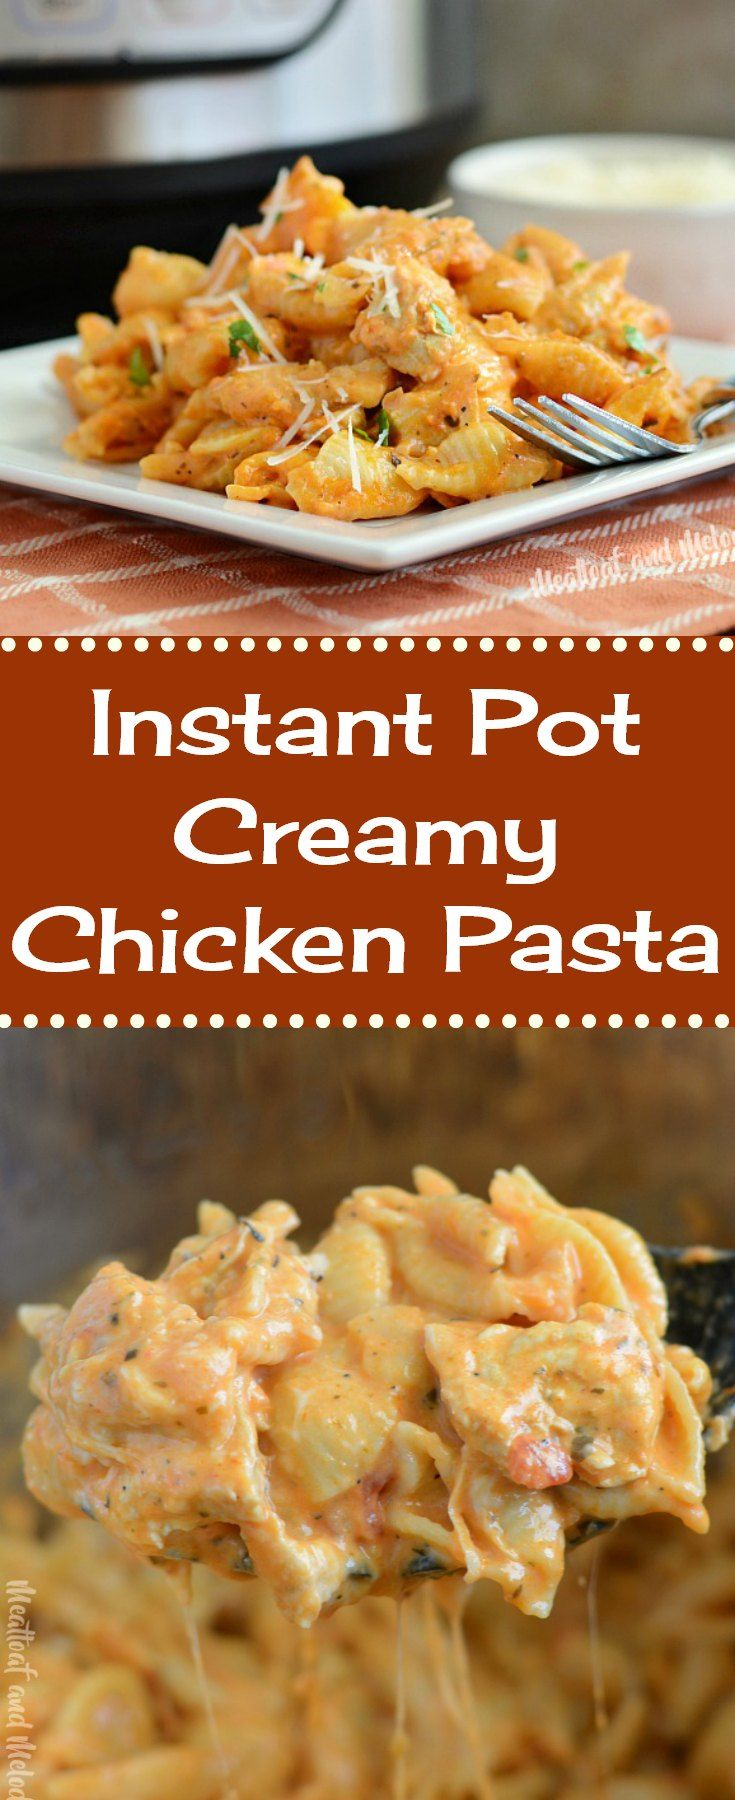 Instant Pot Creamy Chicken Pasta - Meatloaf and Melodrama